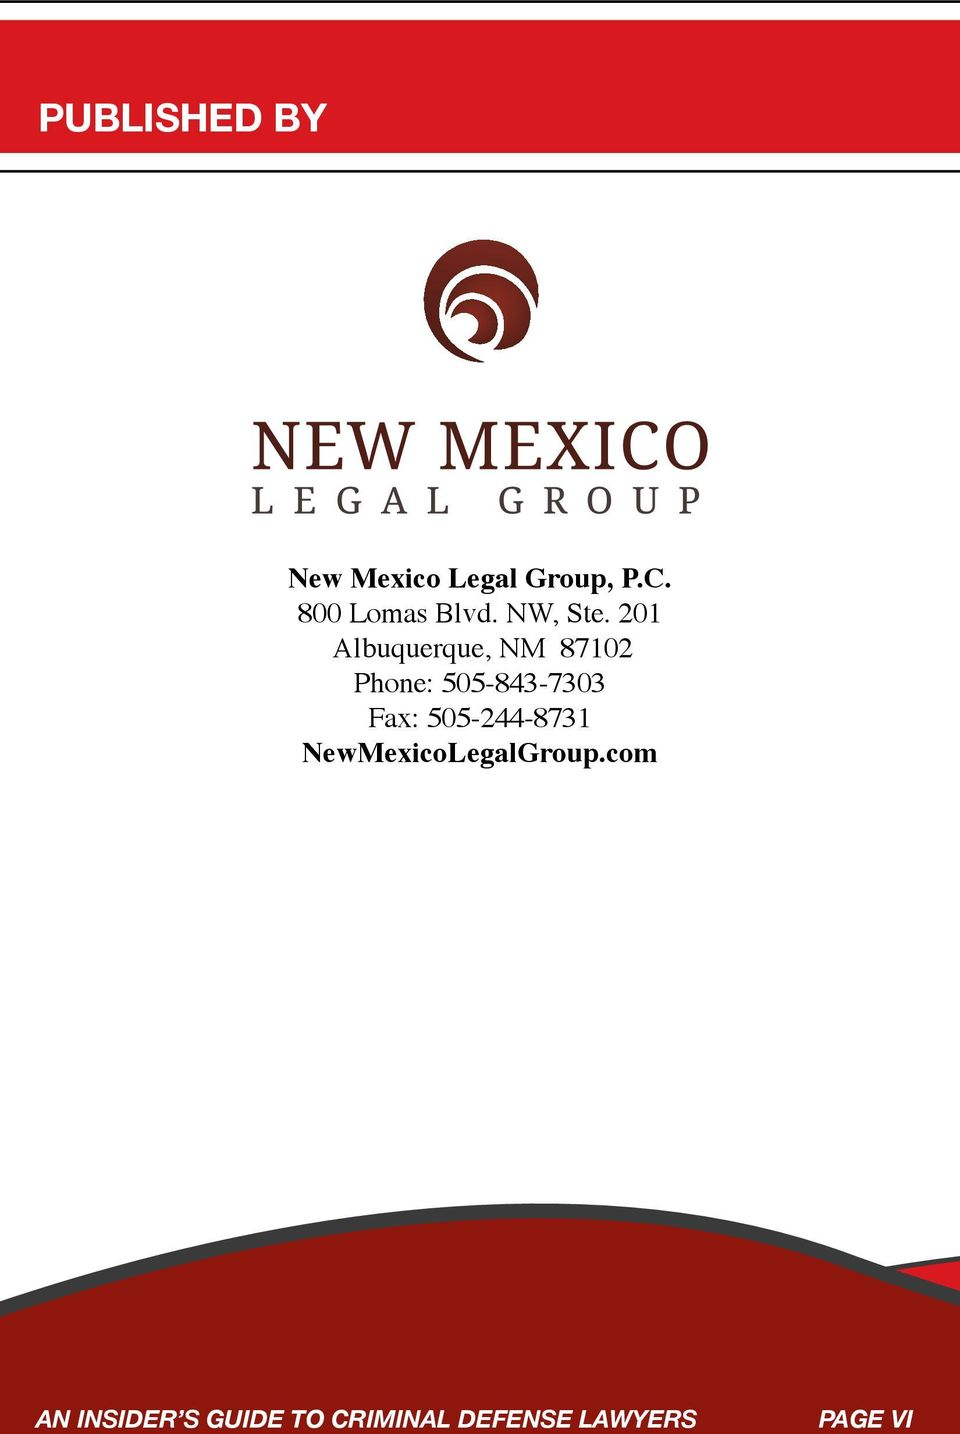 201 Albuquerque, NM 87102 Phone: 505-843-7303 Fax: